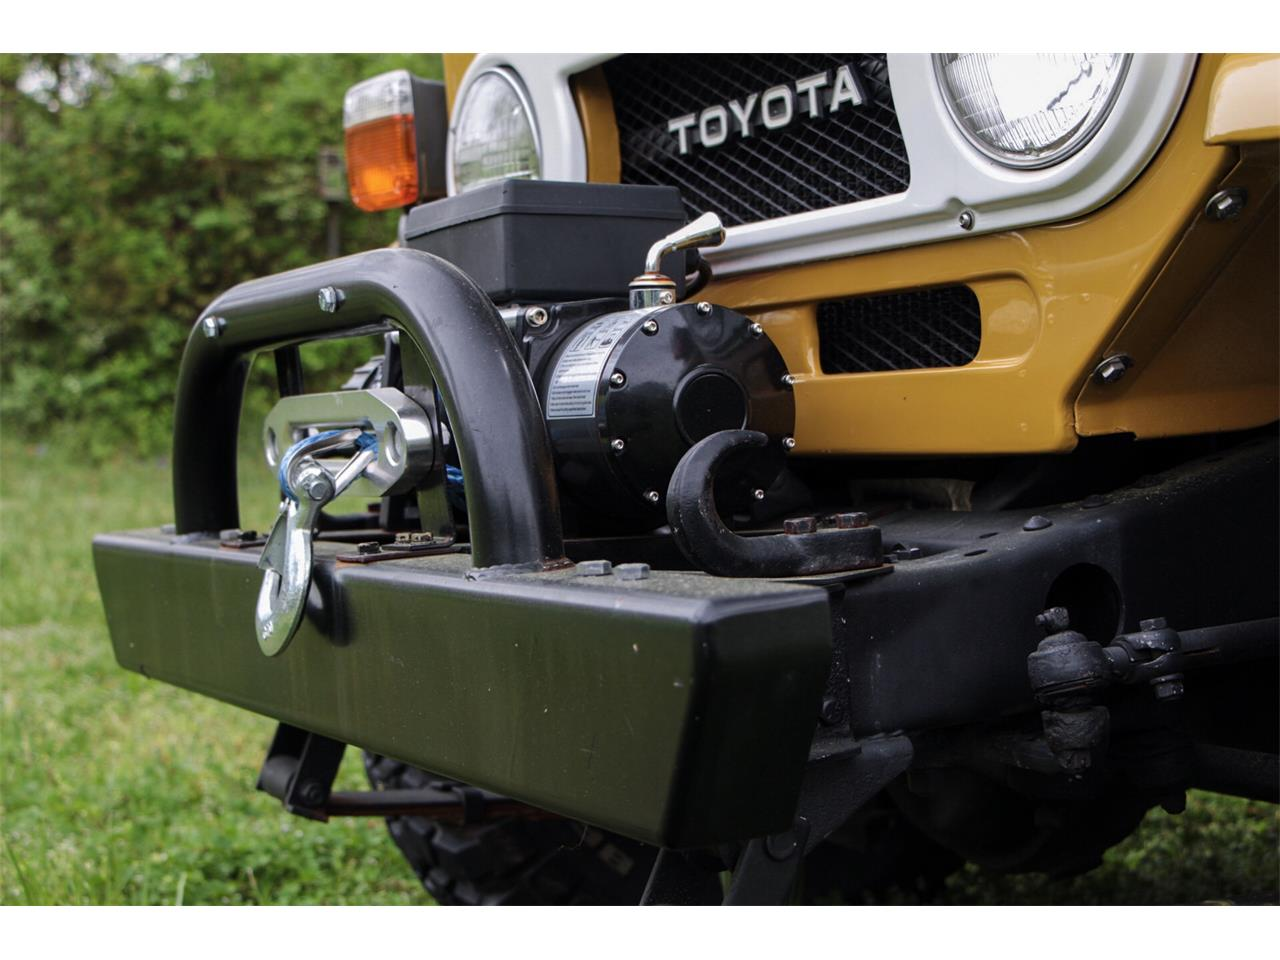 Large Picture of 1977 Toyota Land Cruiser FJ40 located in Georgia - $55,000.00 - PW6P